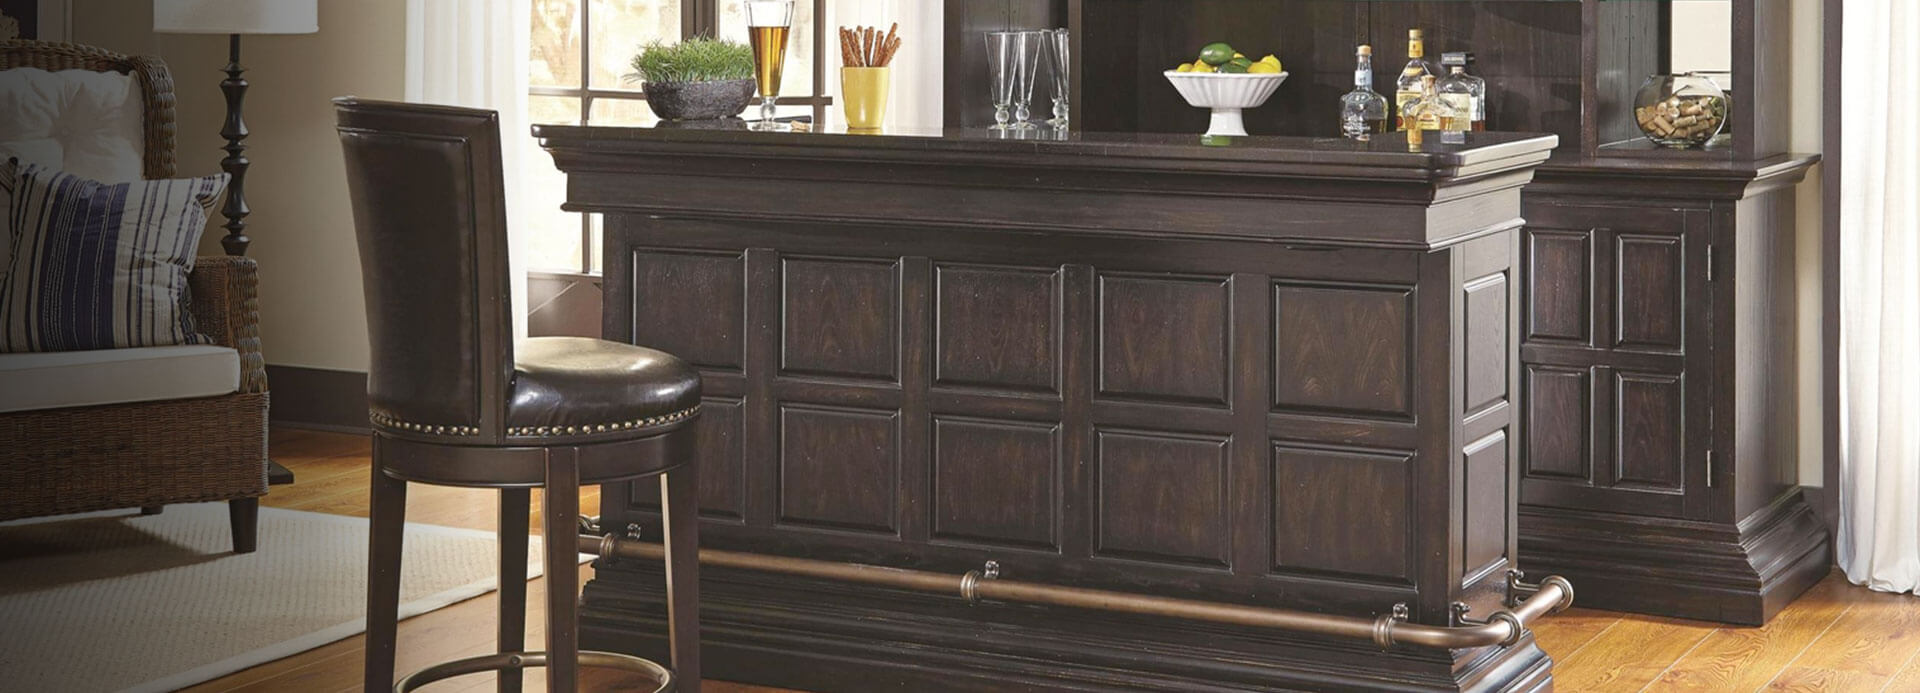 bar homebardesigns home for furniture designs ideas design bars